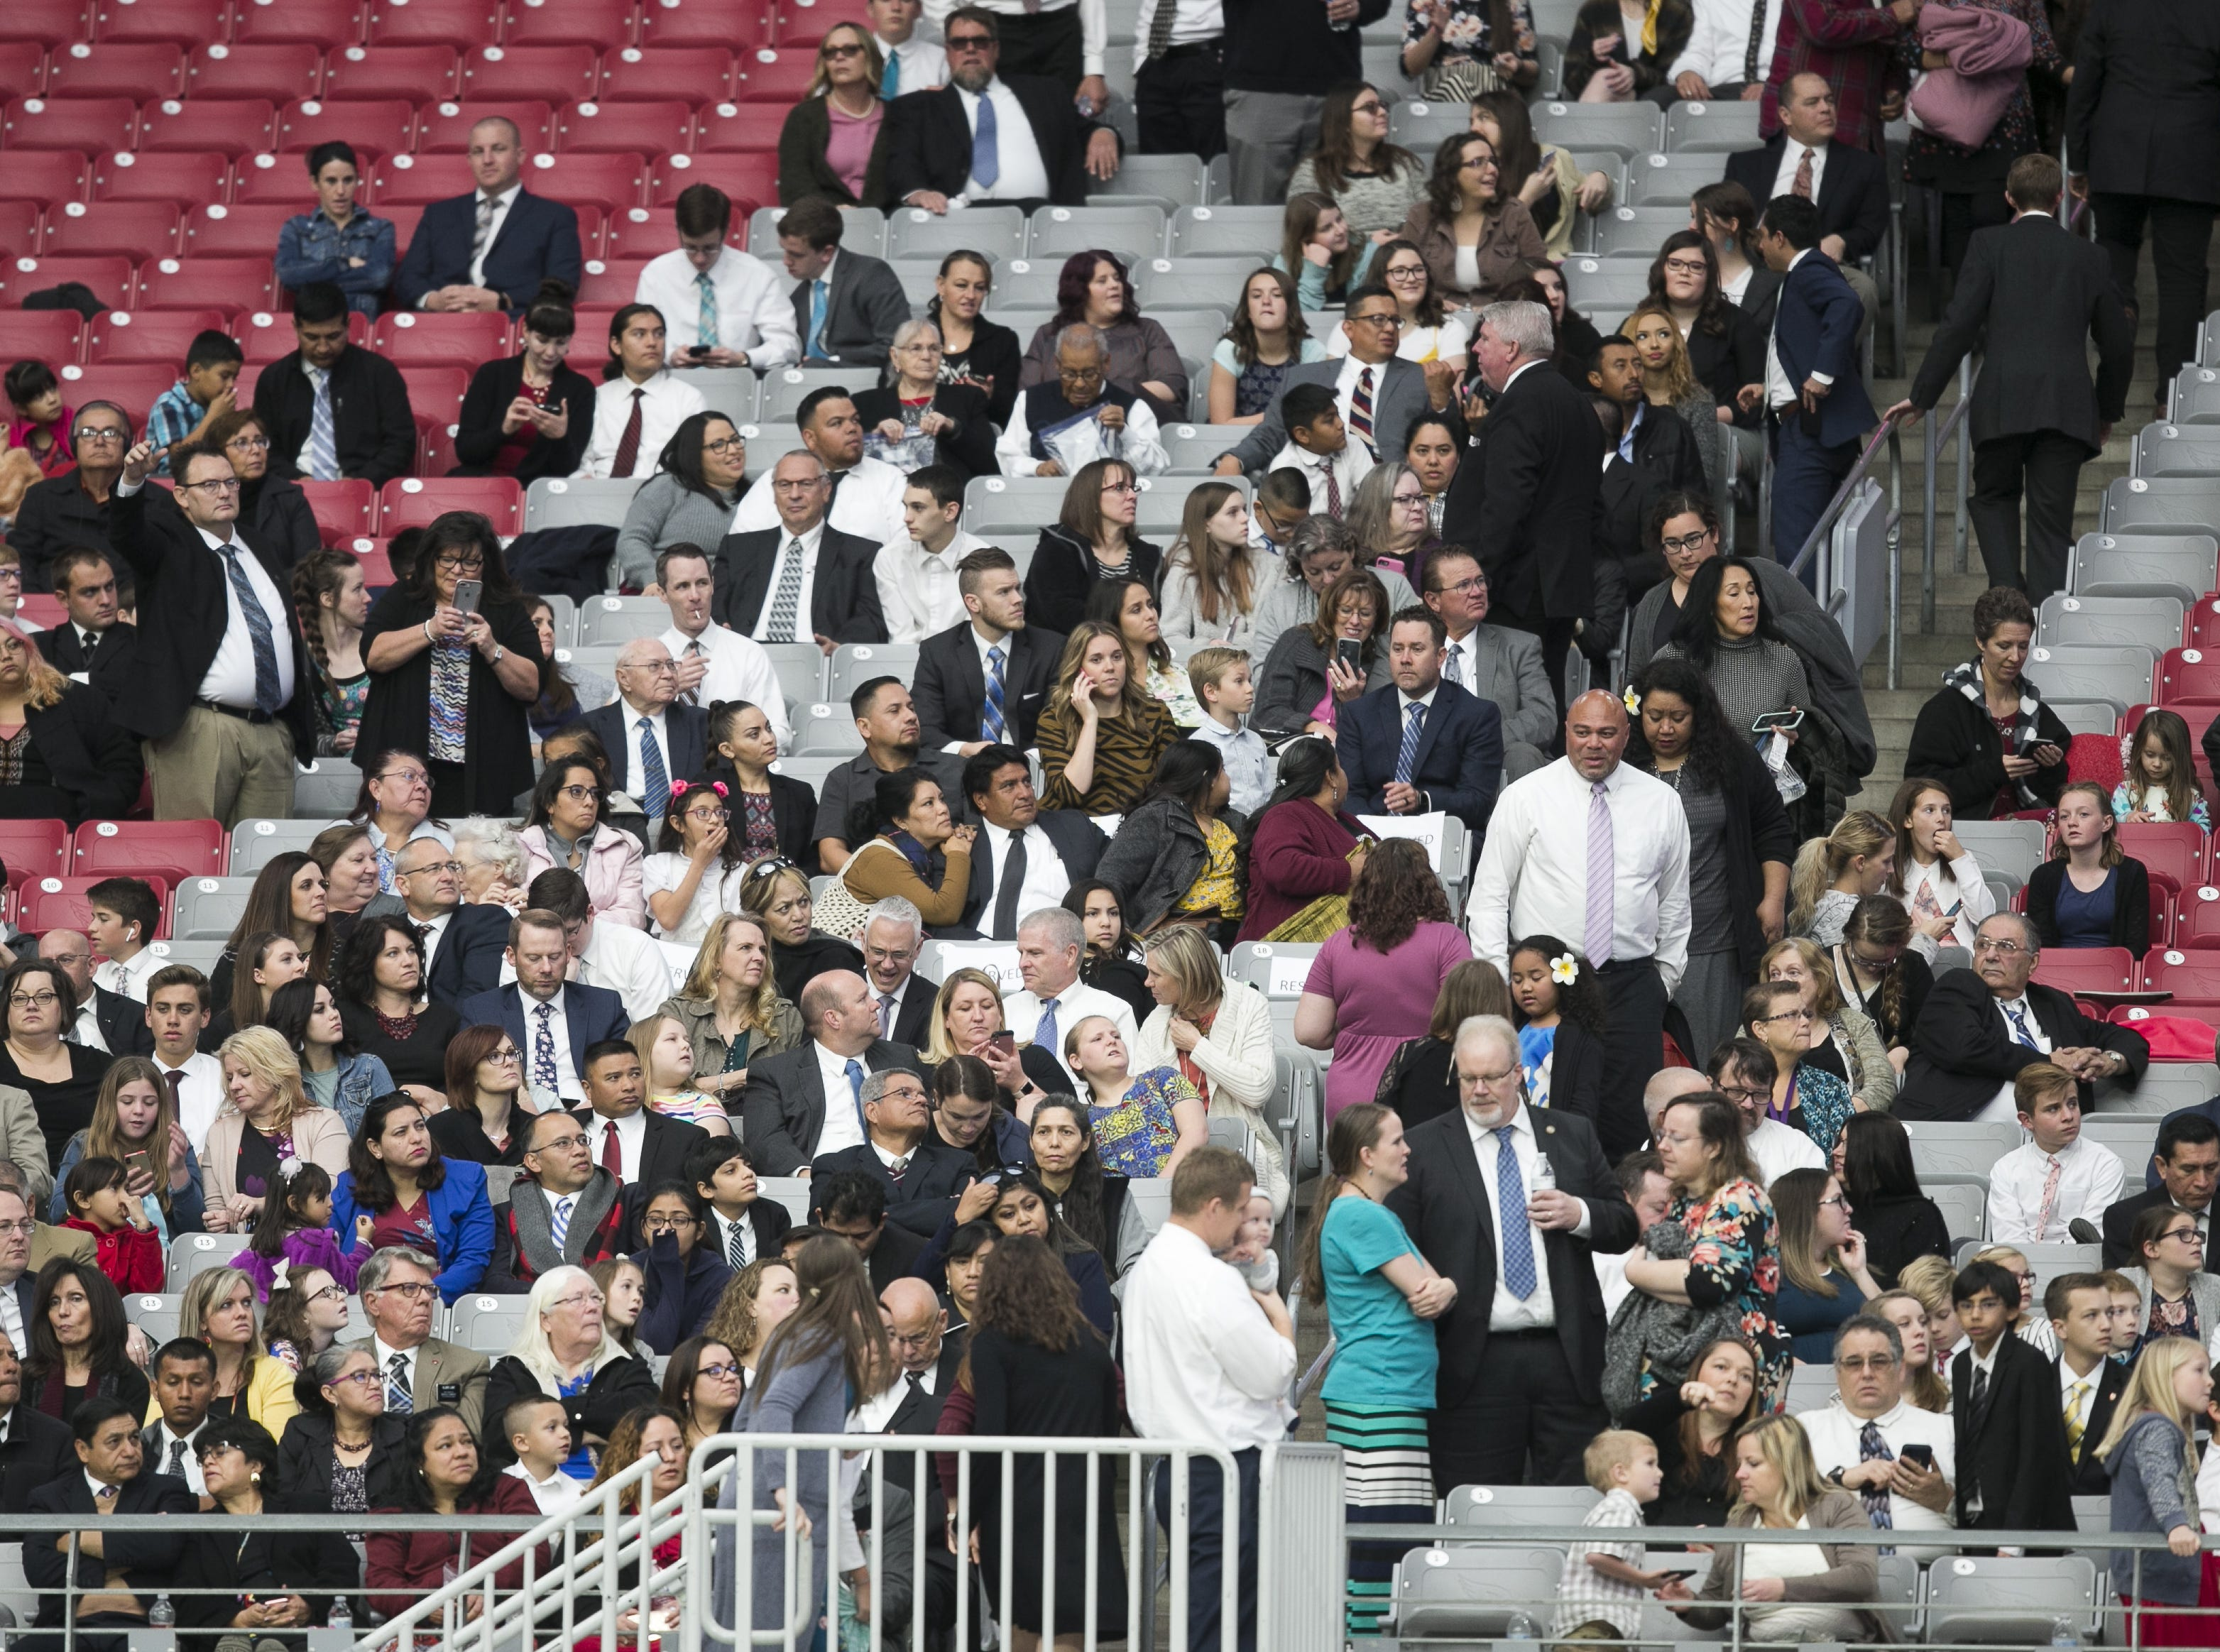 Members of the Church of Jesus Christ of Latter-day Saints wait at State Farm Stadium to hear church President Russell Nelson speak at a devotional in Glendale, Arizona on Sunday, Feb. 10, 2019.